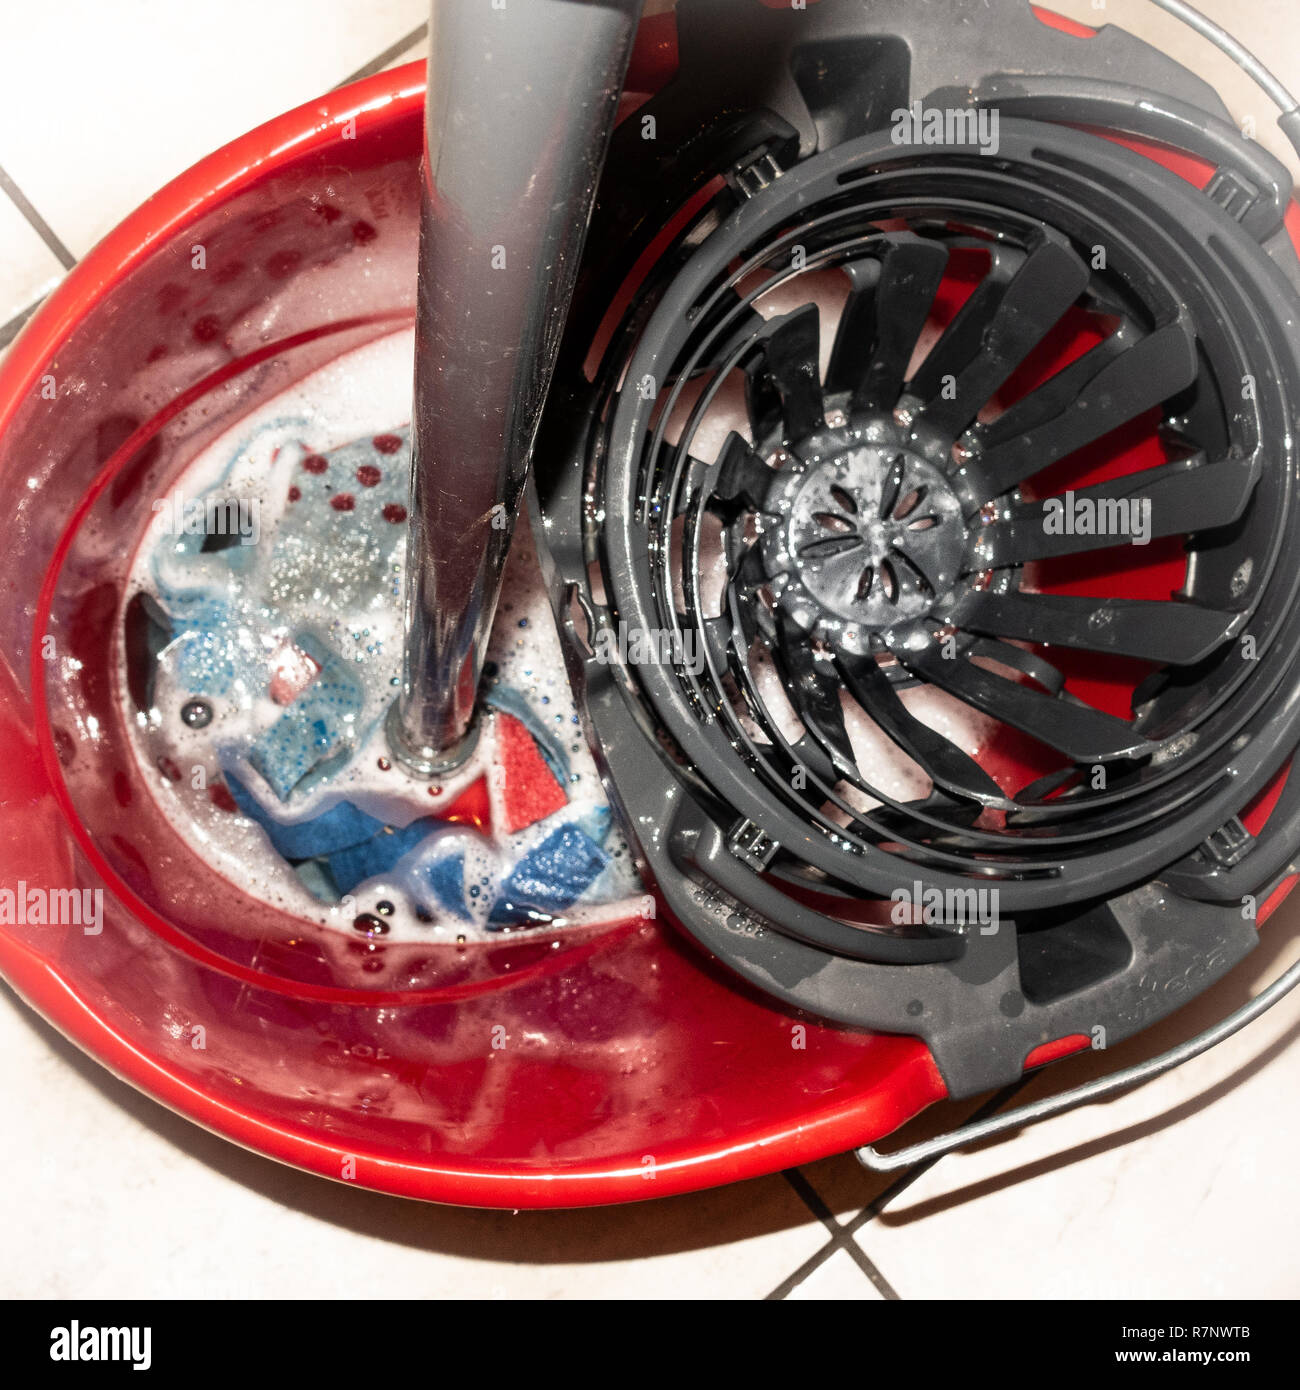 A mop and bucket used by professional cleaners in a kitchen - Stock Image